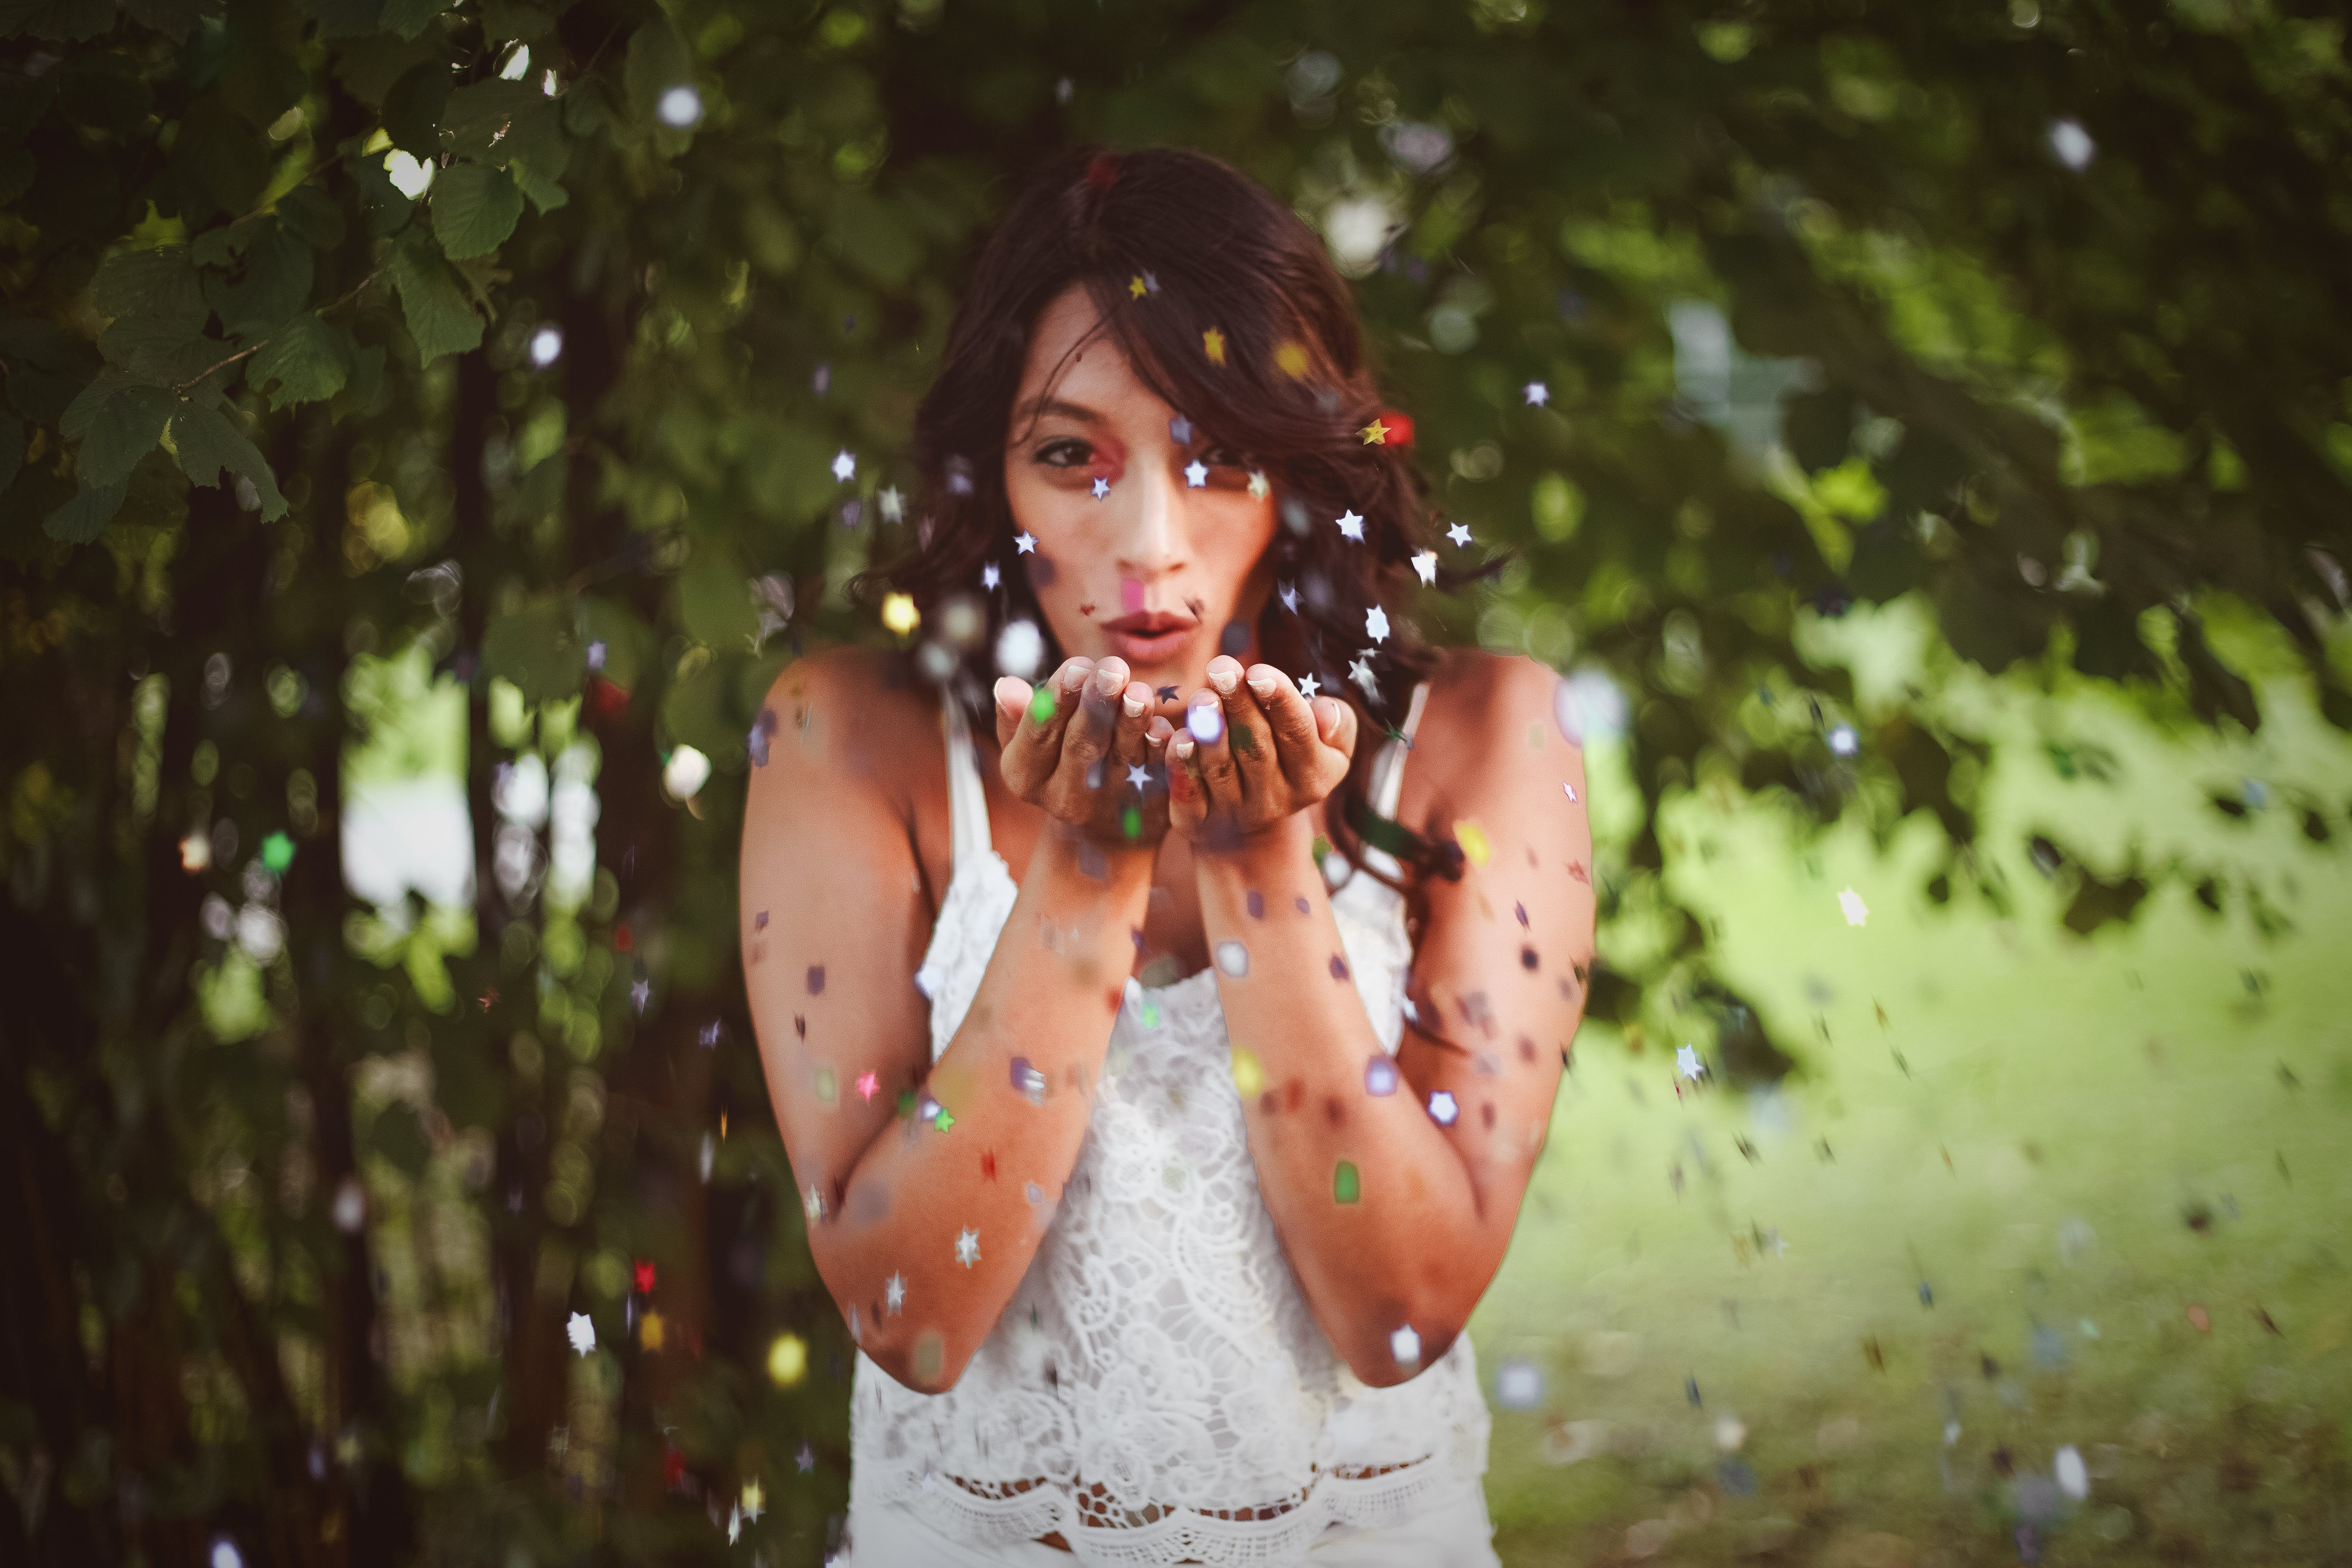 Woman Blowing Glitters On Her Hands